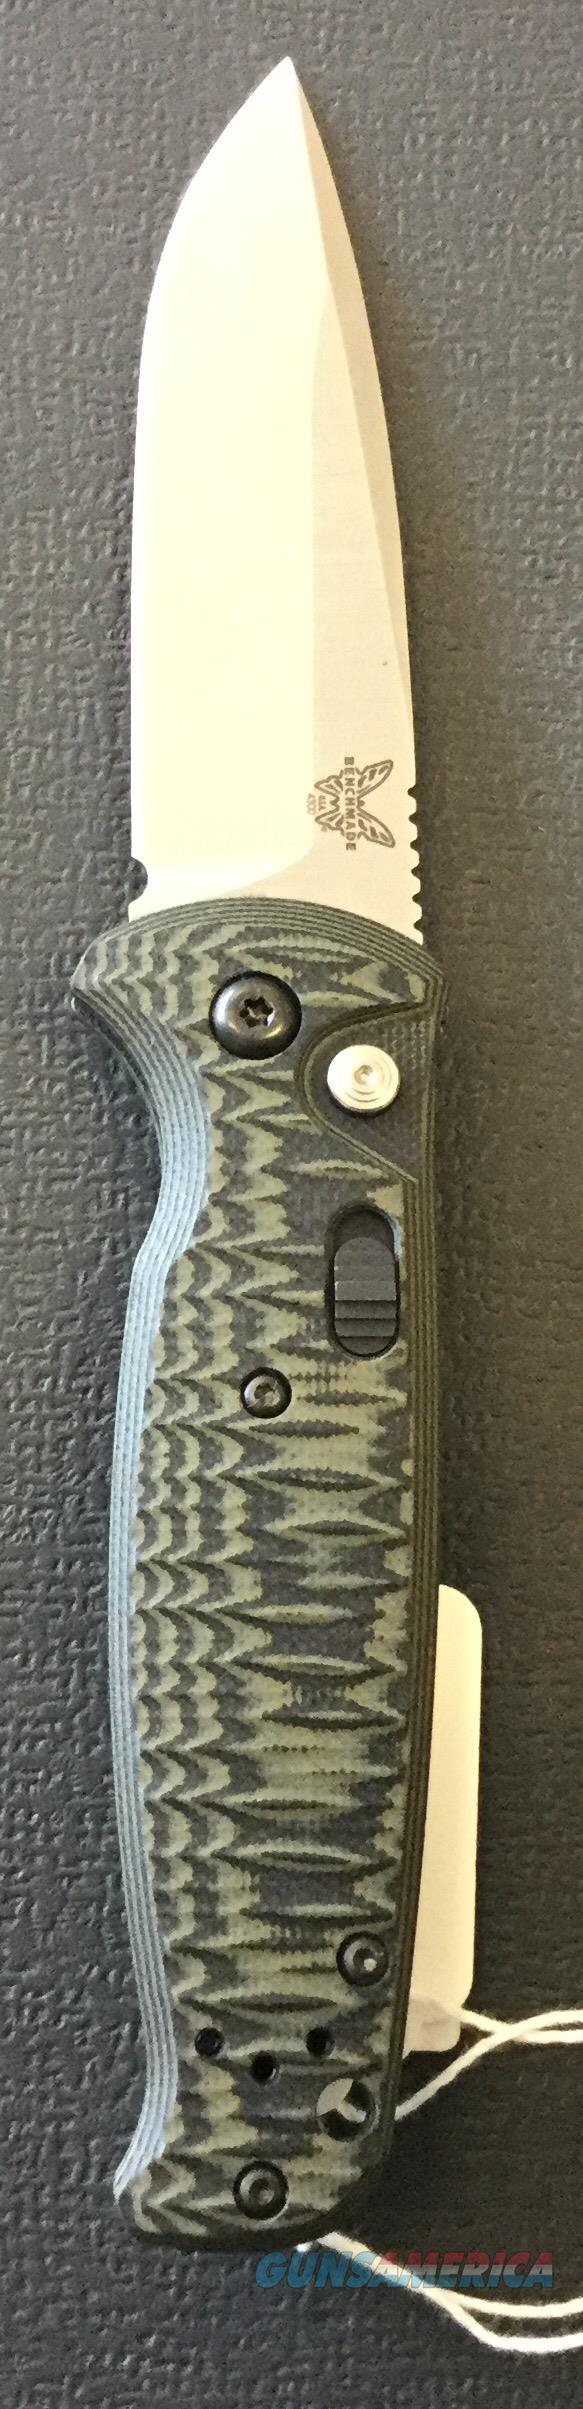 Benchmade 4300-1 CLA AUTO NIB NO CC FEES  Non-Guns > Knives/Swords > Knives > Folding Blade > Hand Made